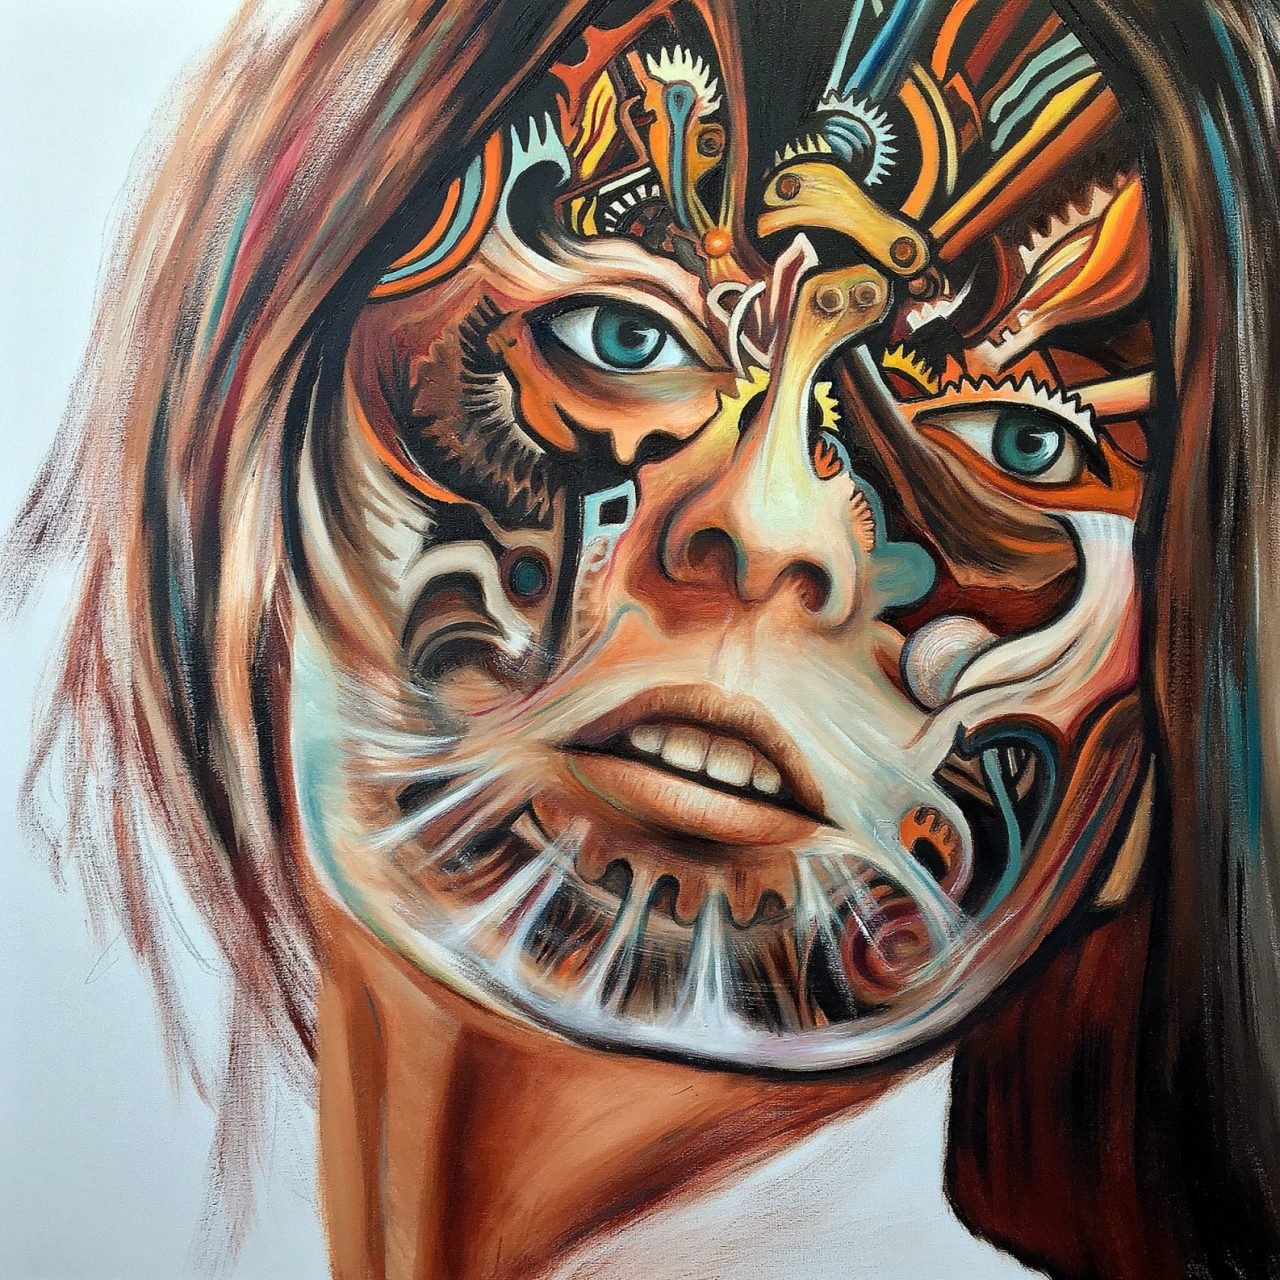 The Mechanical Paradise oil paintings by Paul Kingsley Squire